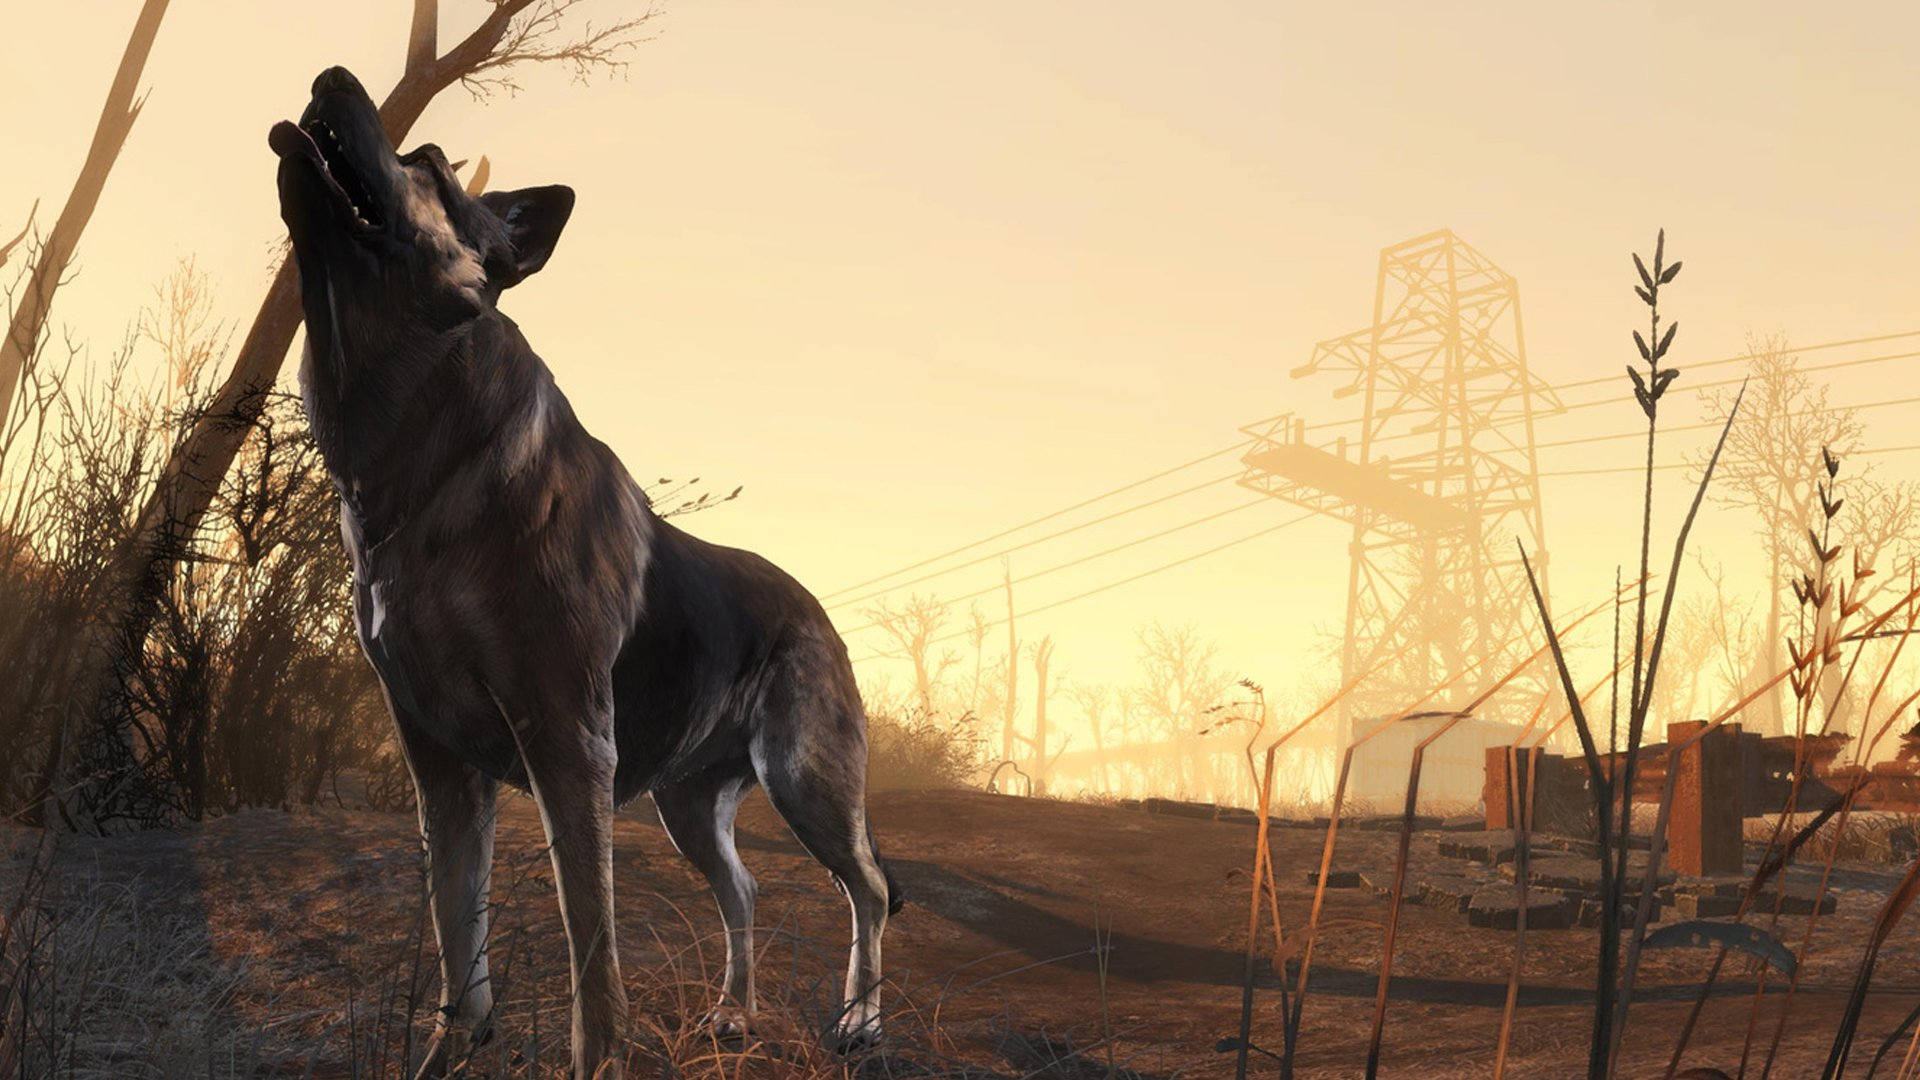 Fallout 4 HD Wallpaper Dogmeat 1920x1080